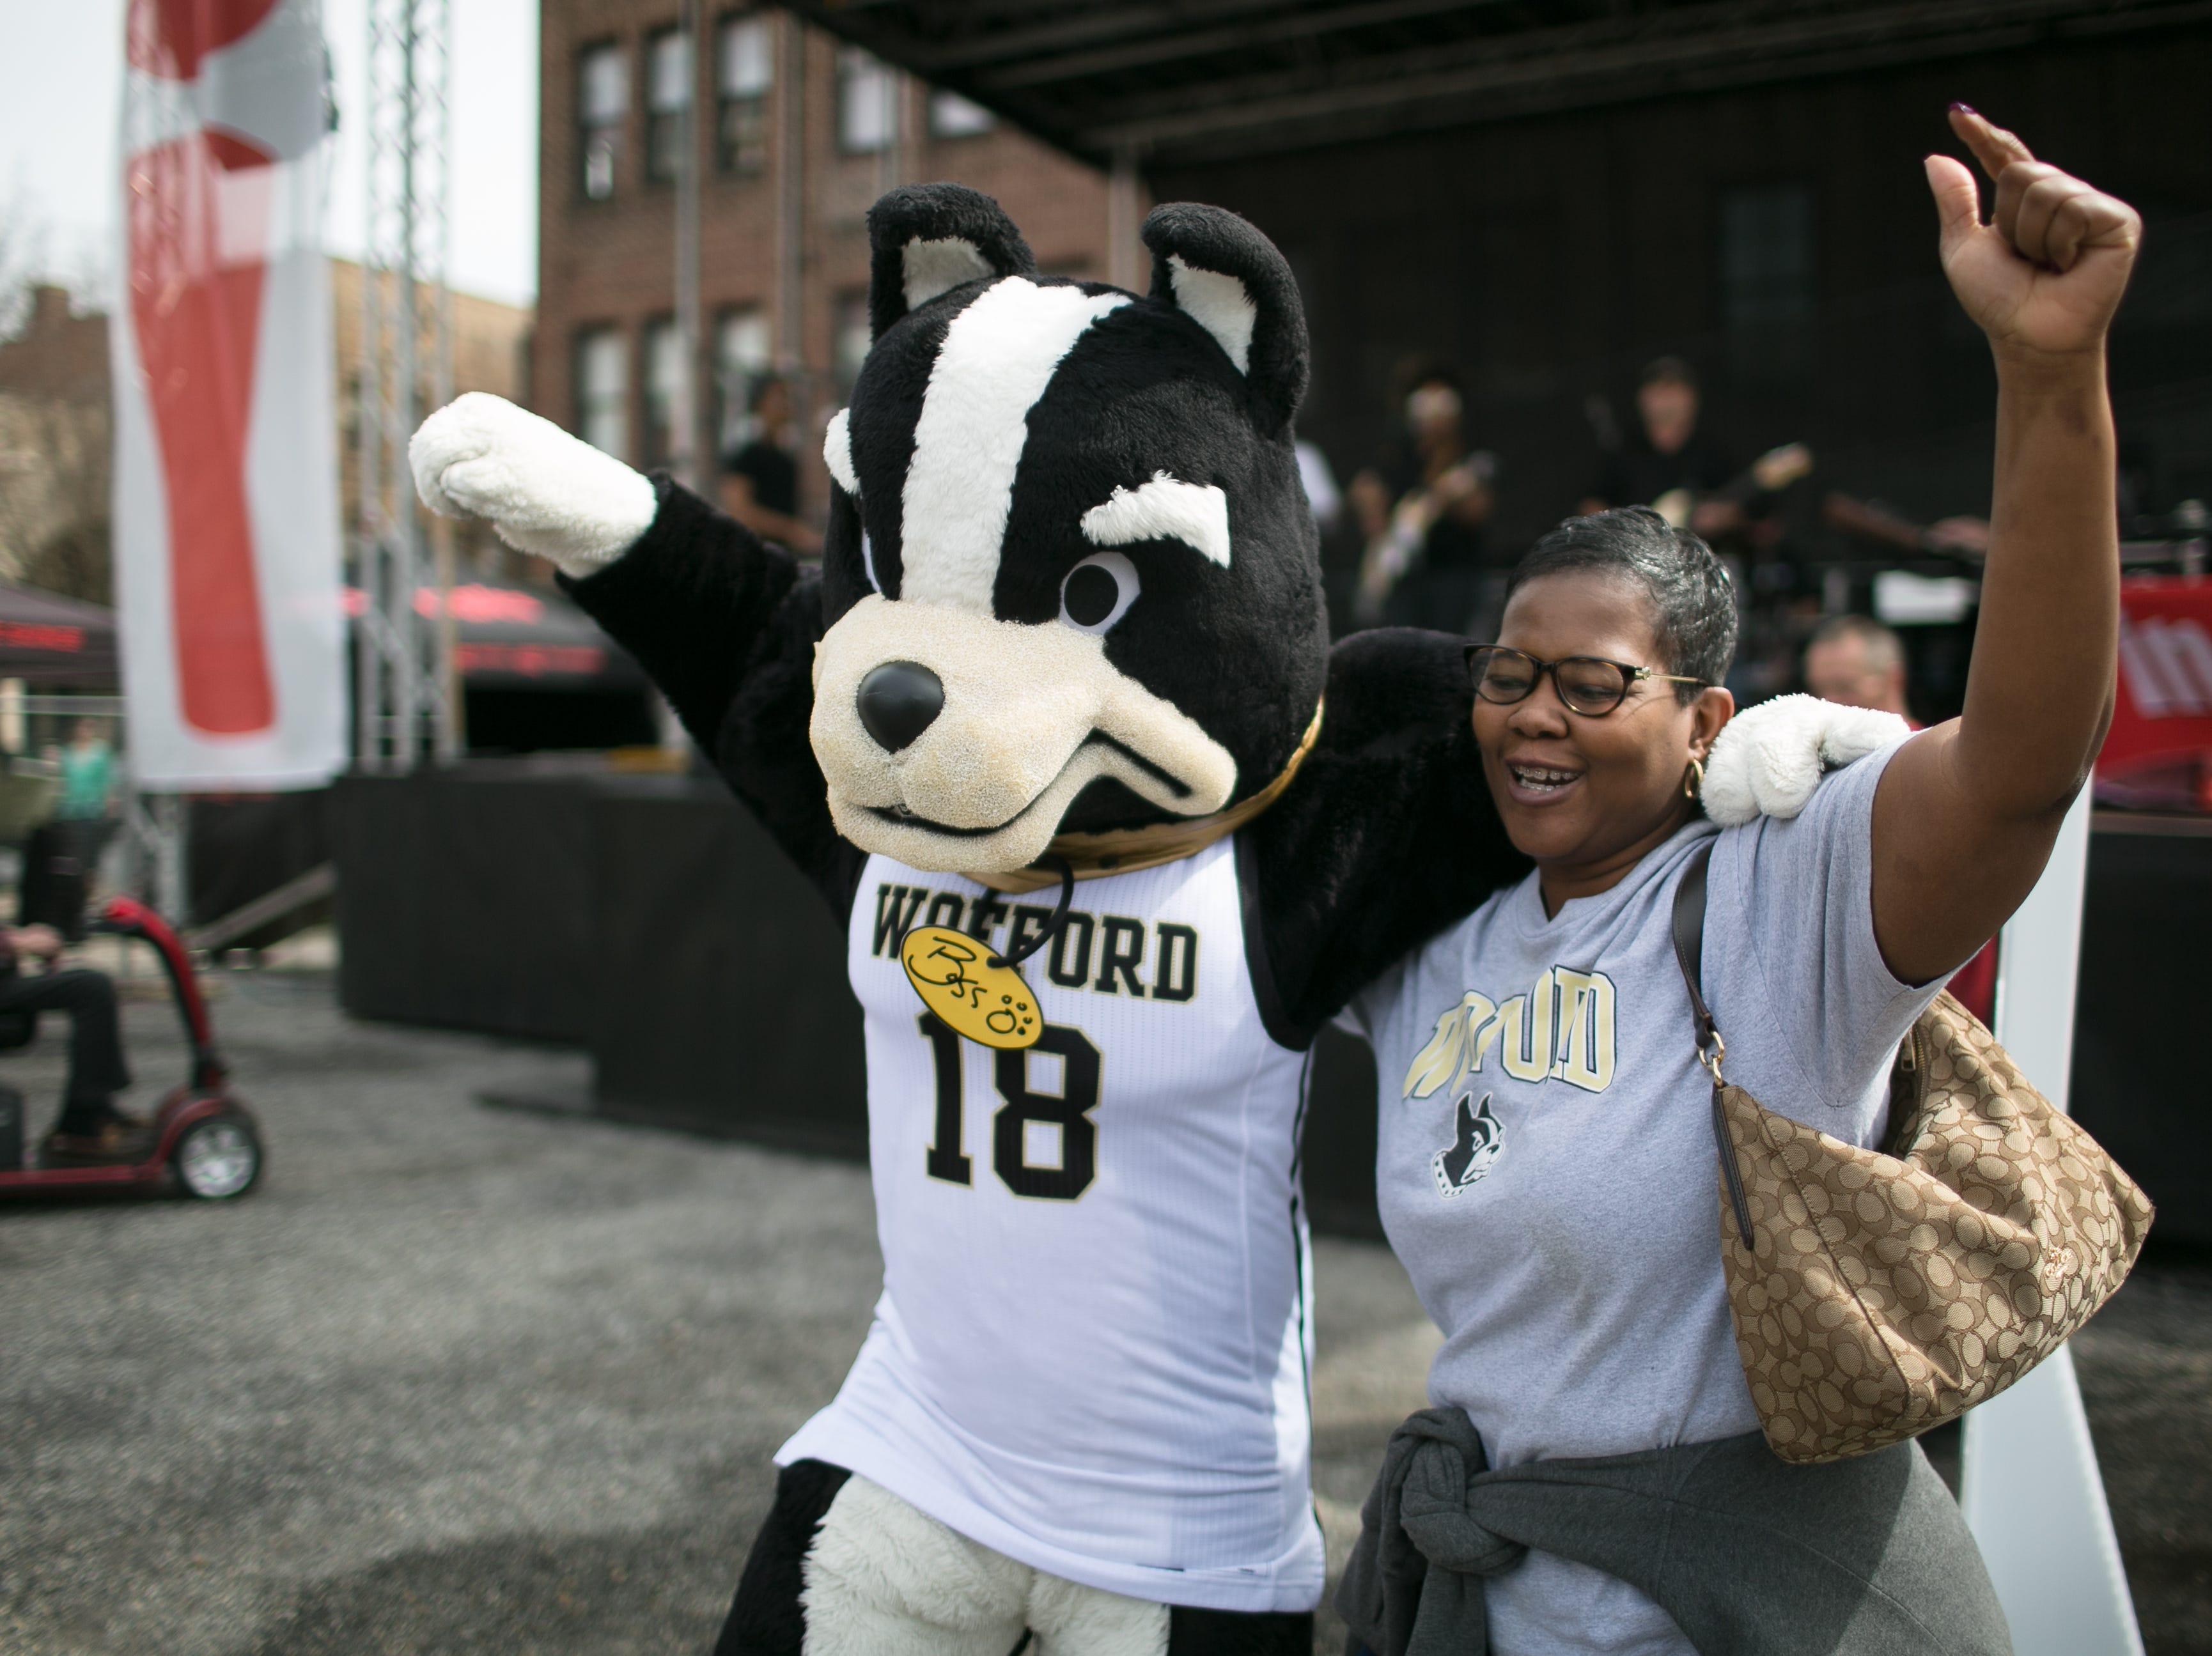 Shan Lovette danced with Wofford's mascot as Lyric performed across the street from the U.S. Cellular Center on Sunday, March 10th, 2019. -Colby Rabon (colbyrabon@gmail.com)